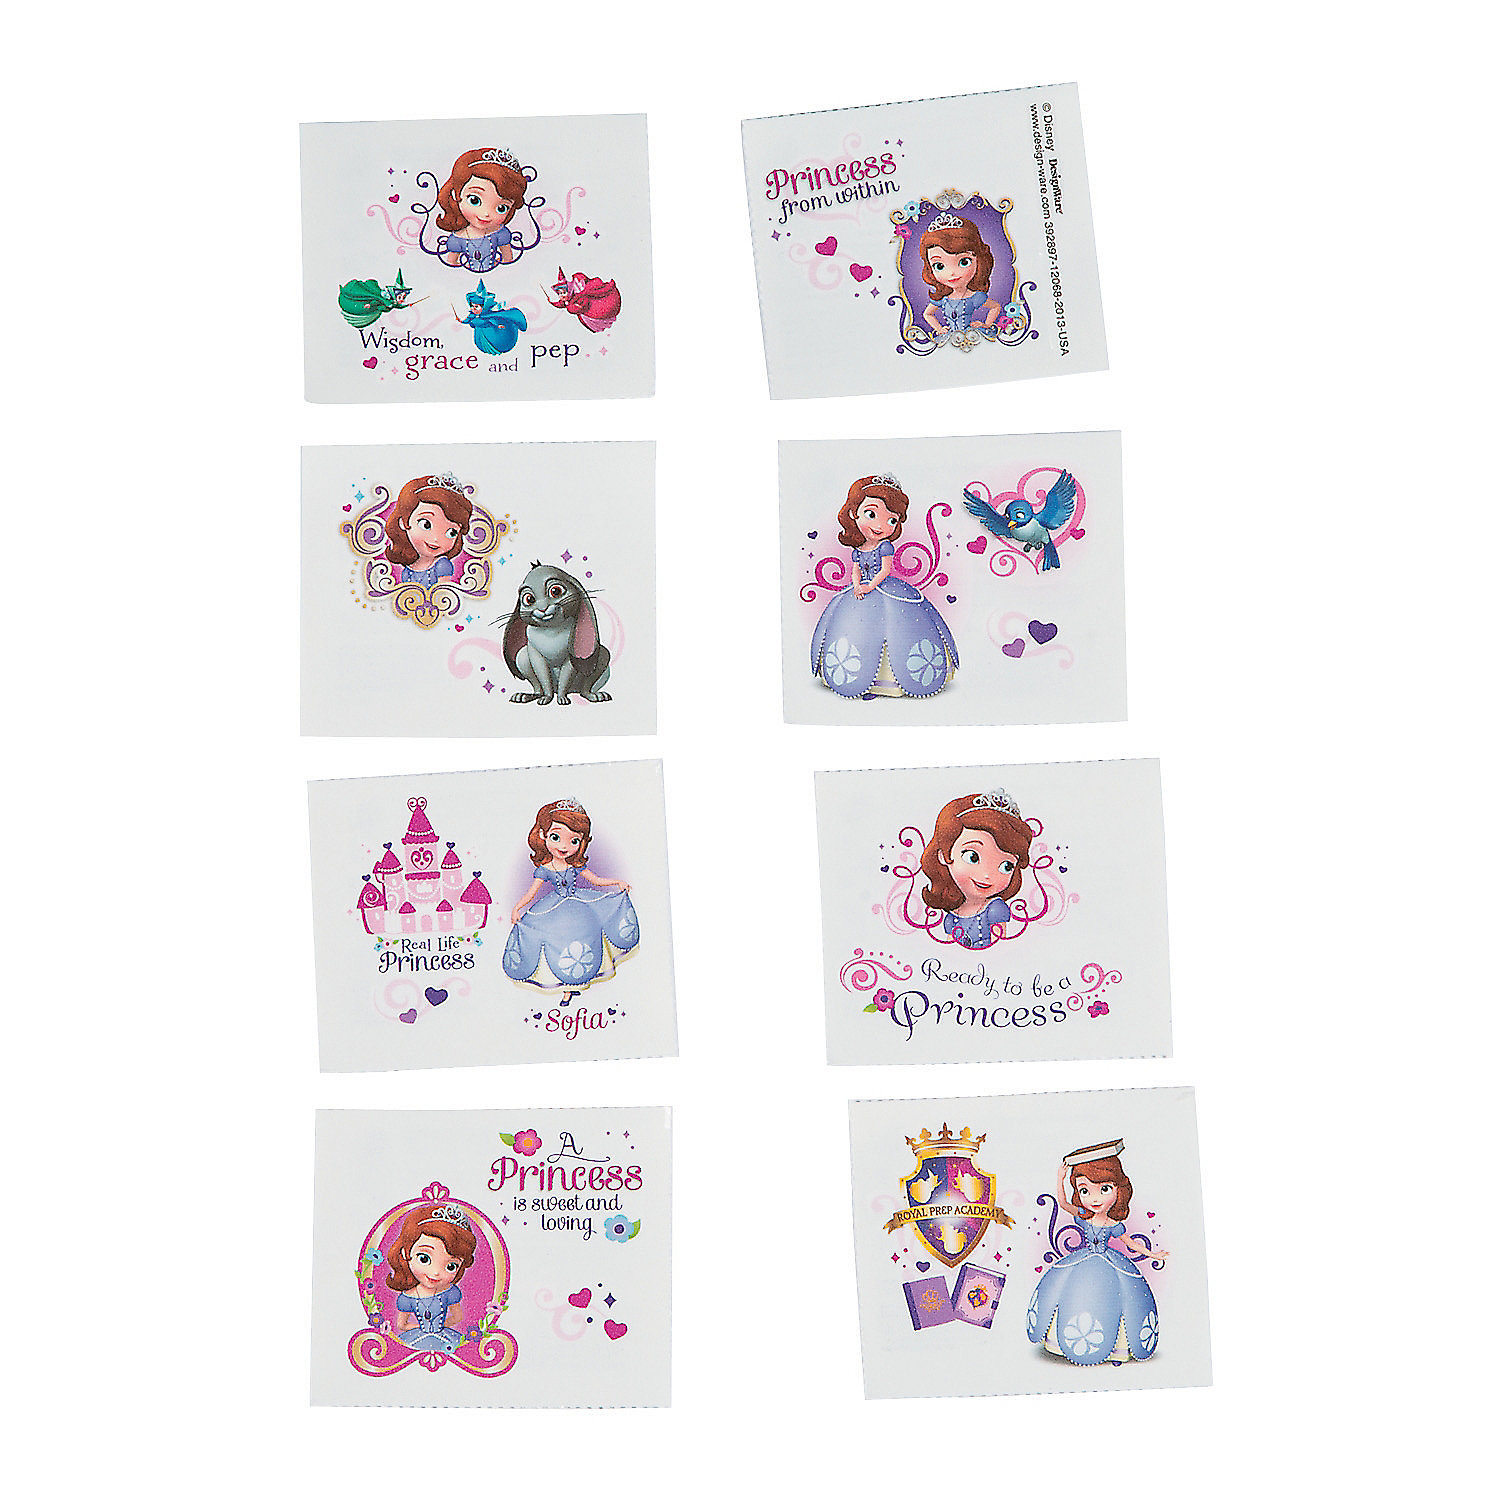 Sofia the first tattoos oriental trading for Sofia the first tattoos